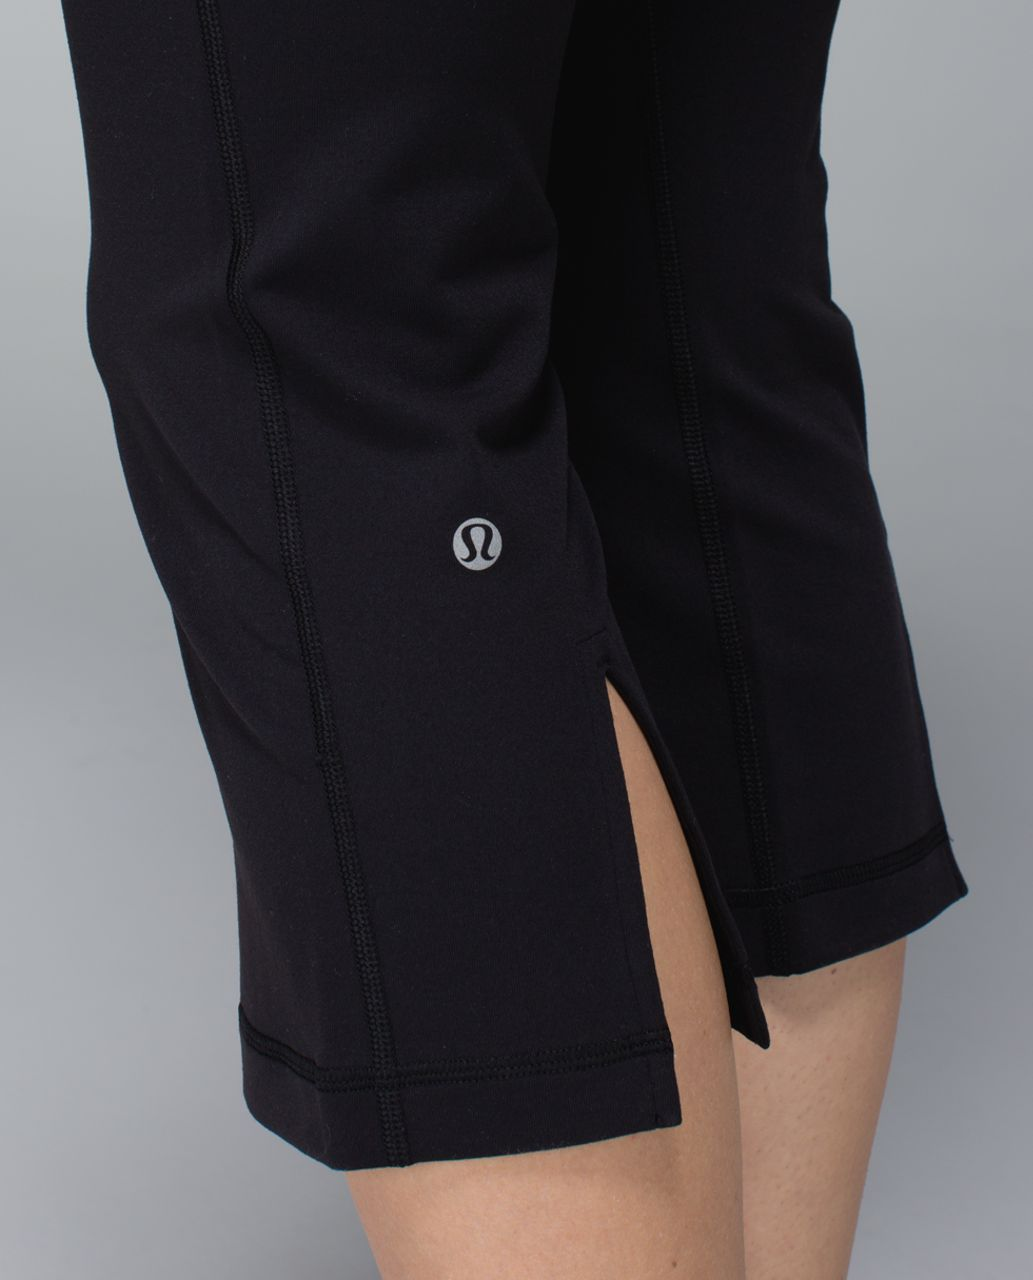 Lululemon Gather & Crow Crop *Full-On Luon - Black / Quilt Winter 13-15